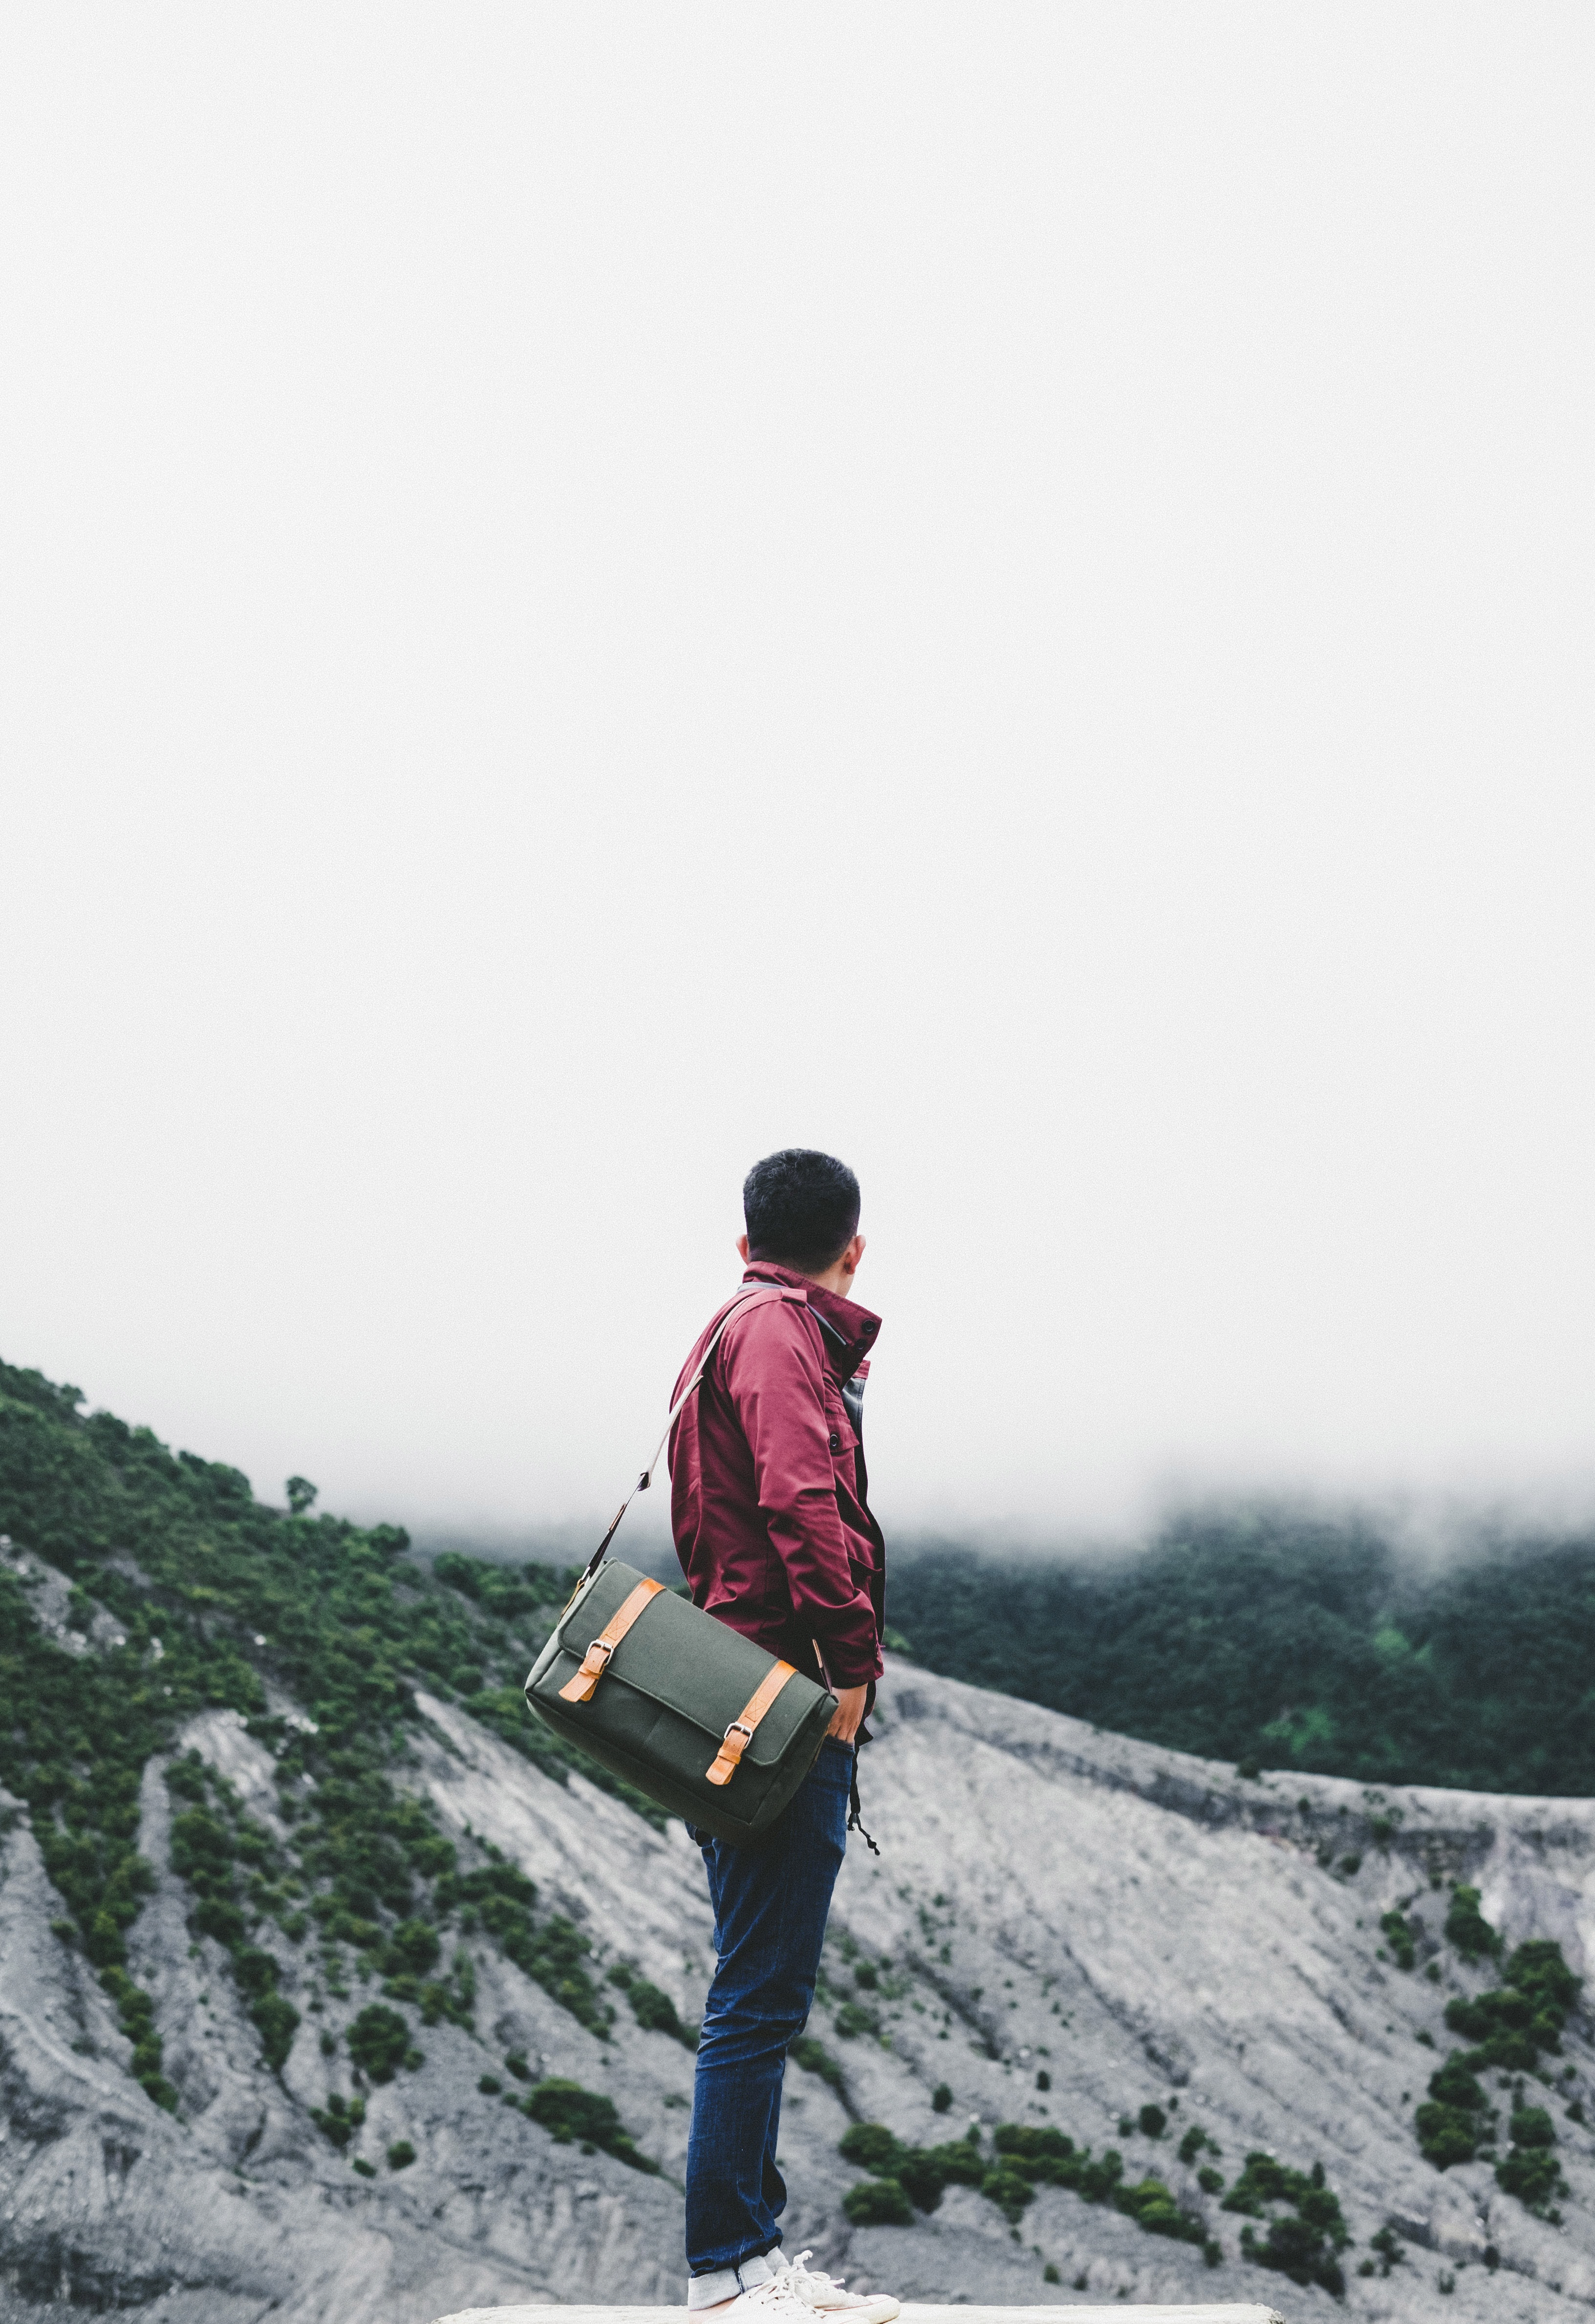 Stylish man dressed in jeans and red jacket with leather satchel standing in gray mountain terrain